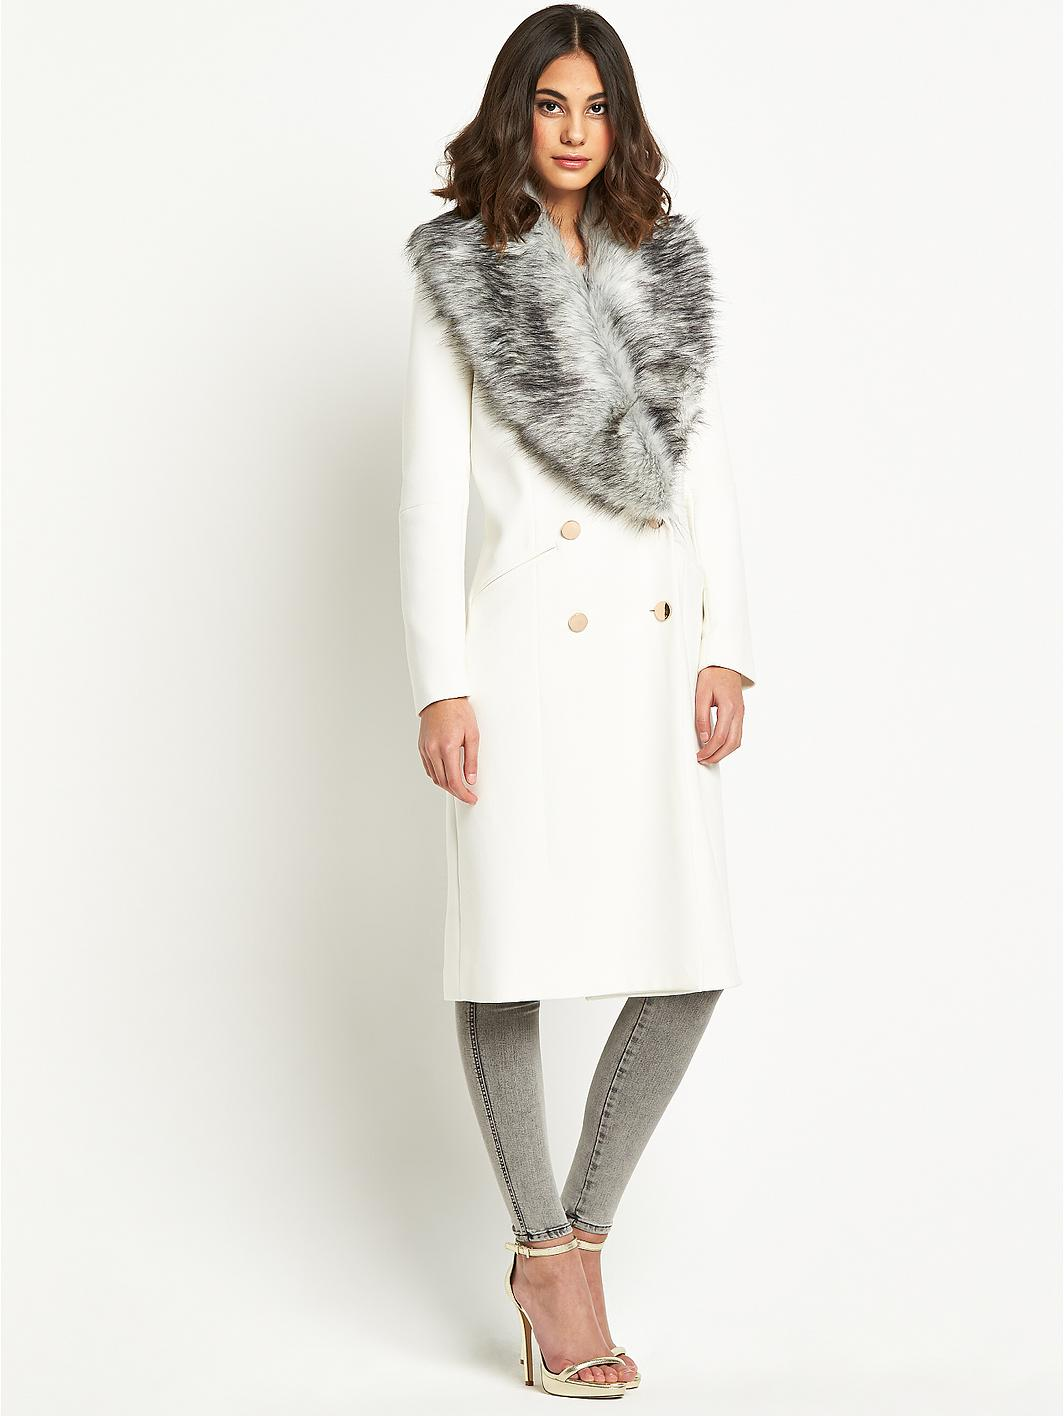 WHITE COAT WITH FUR COLLAR QUOTES on The Hunt